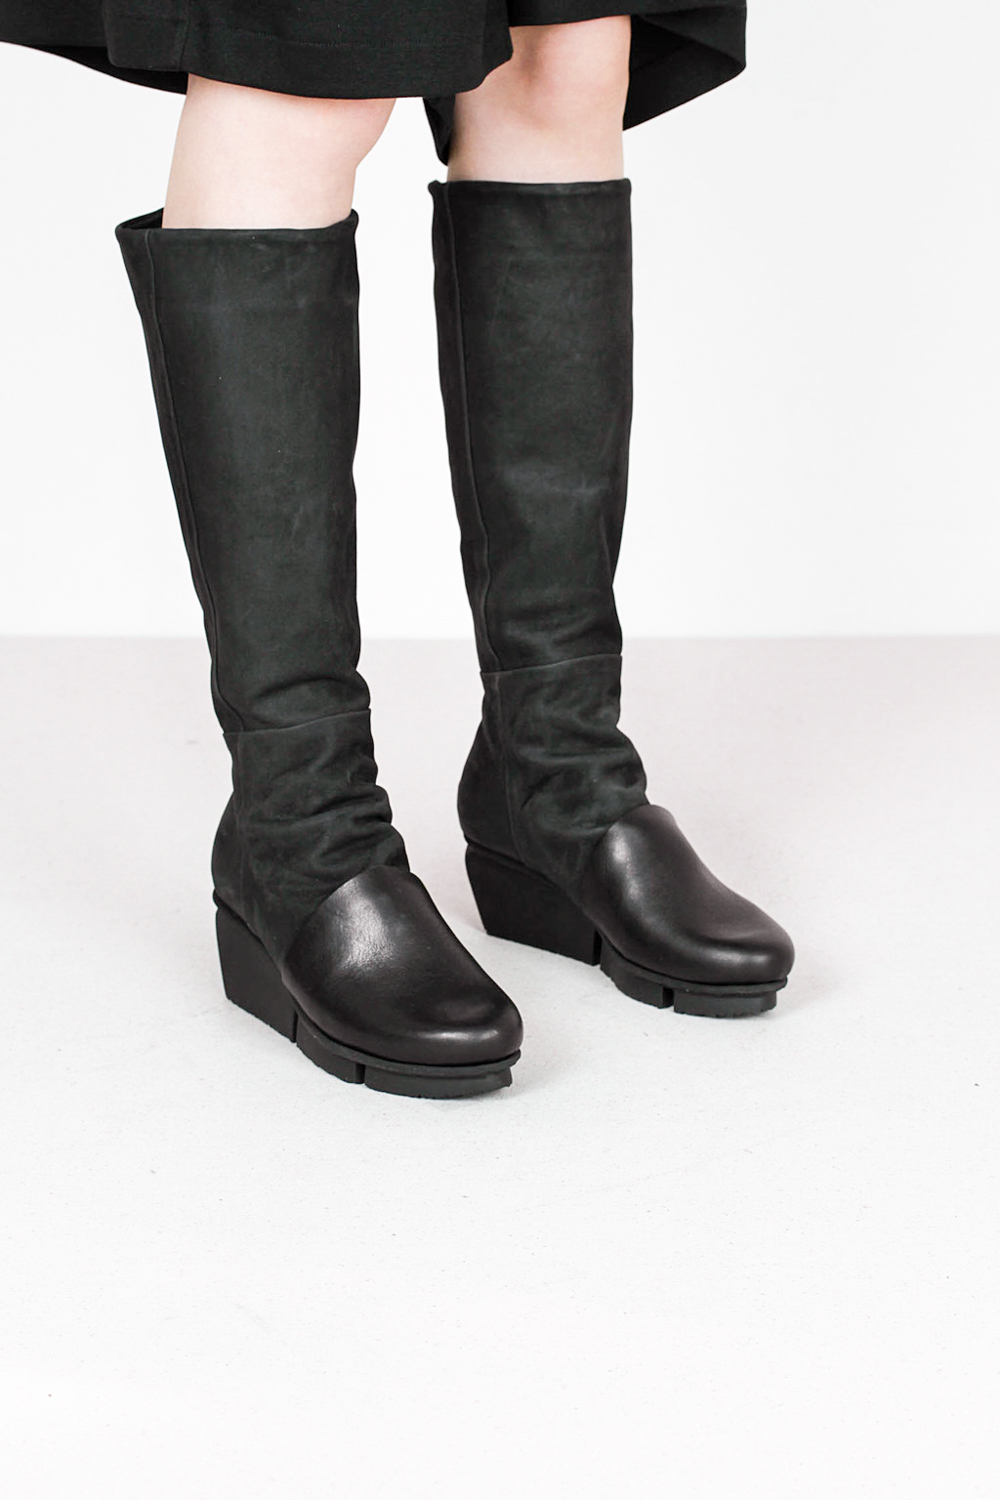 Trippen melt f waw blk tiz blk leather boots